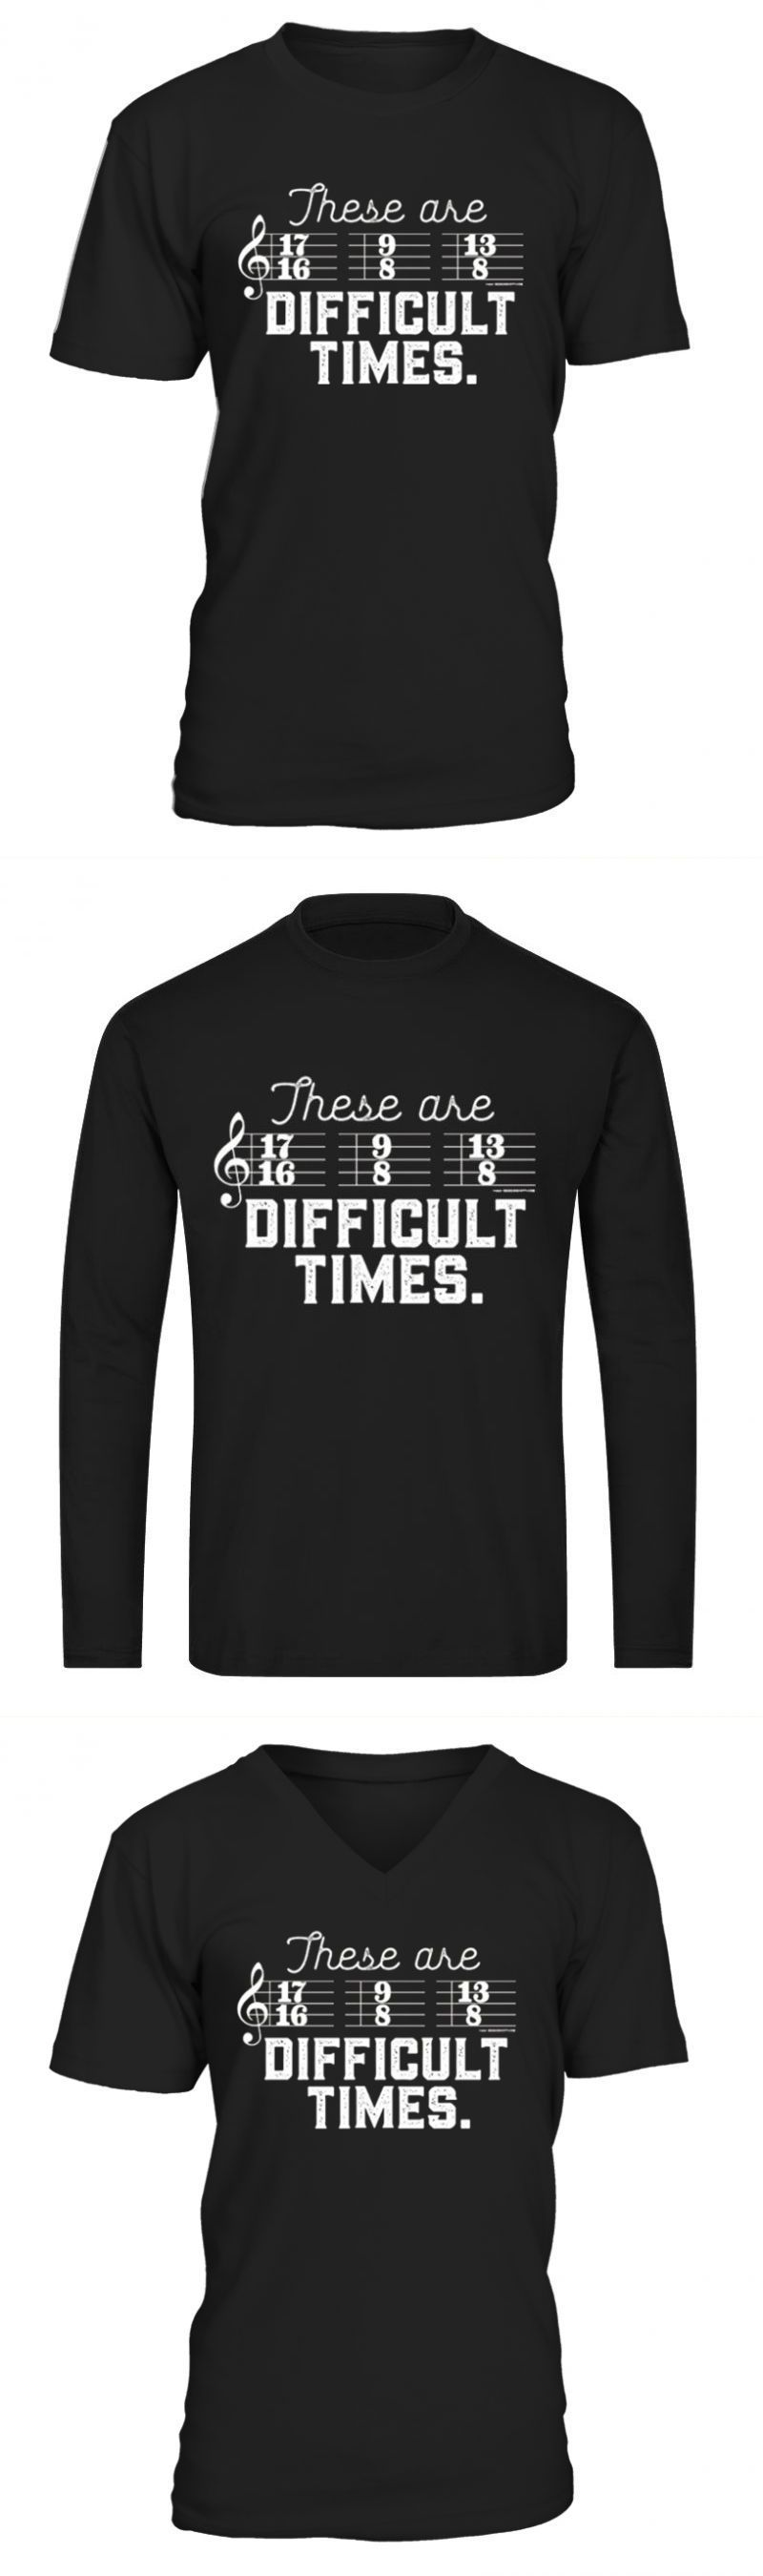 1ce672165cb 90s r and b music t shirt these are difficult times funny t-shirt i love  country music t-shirt  90s  and  music  shirt  these  are  difficult  times   funny ...